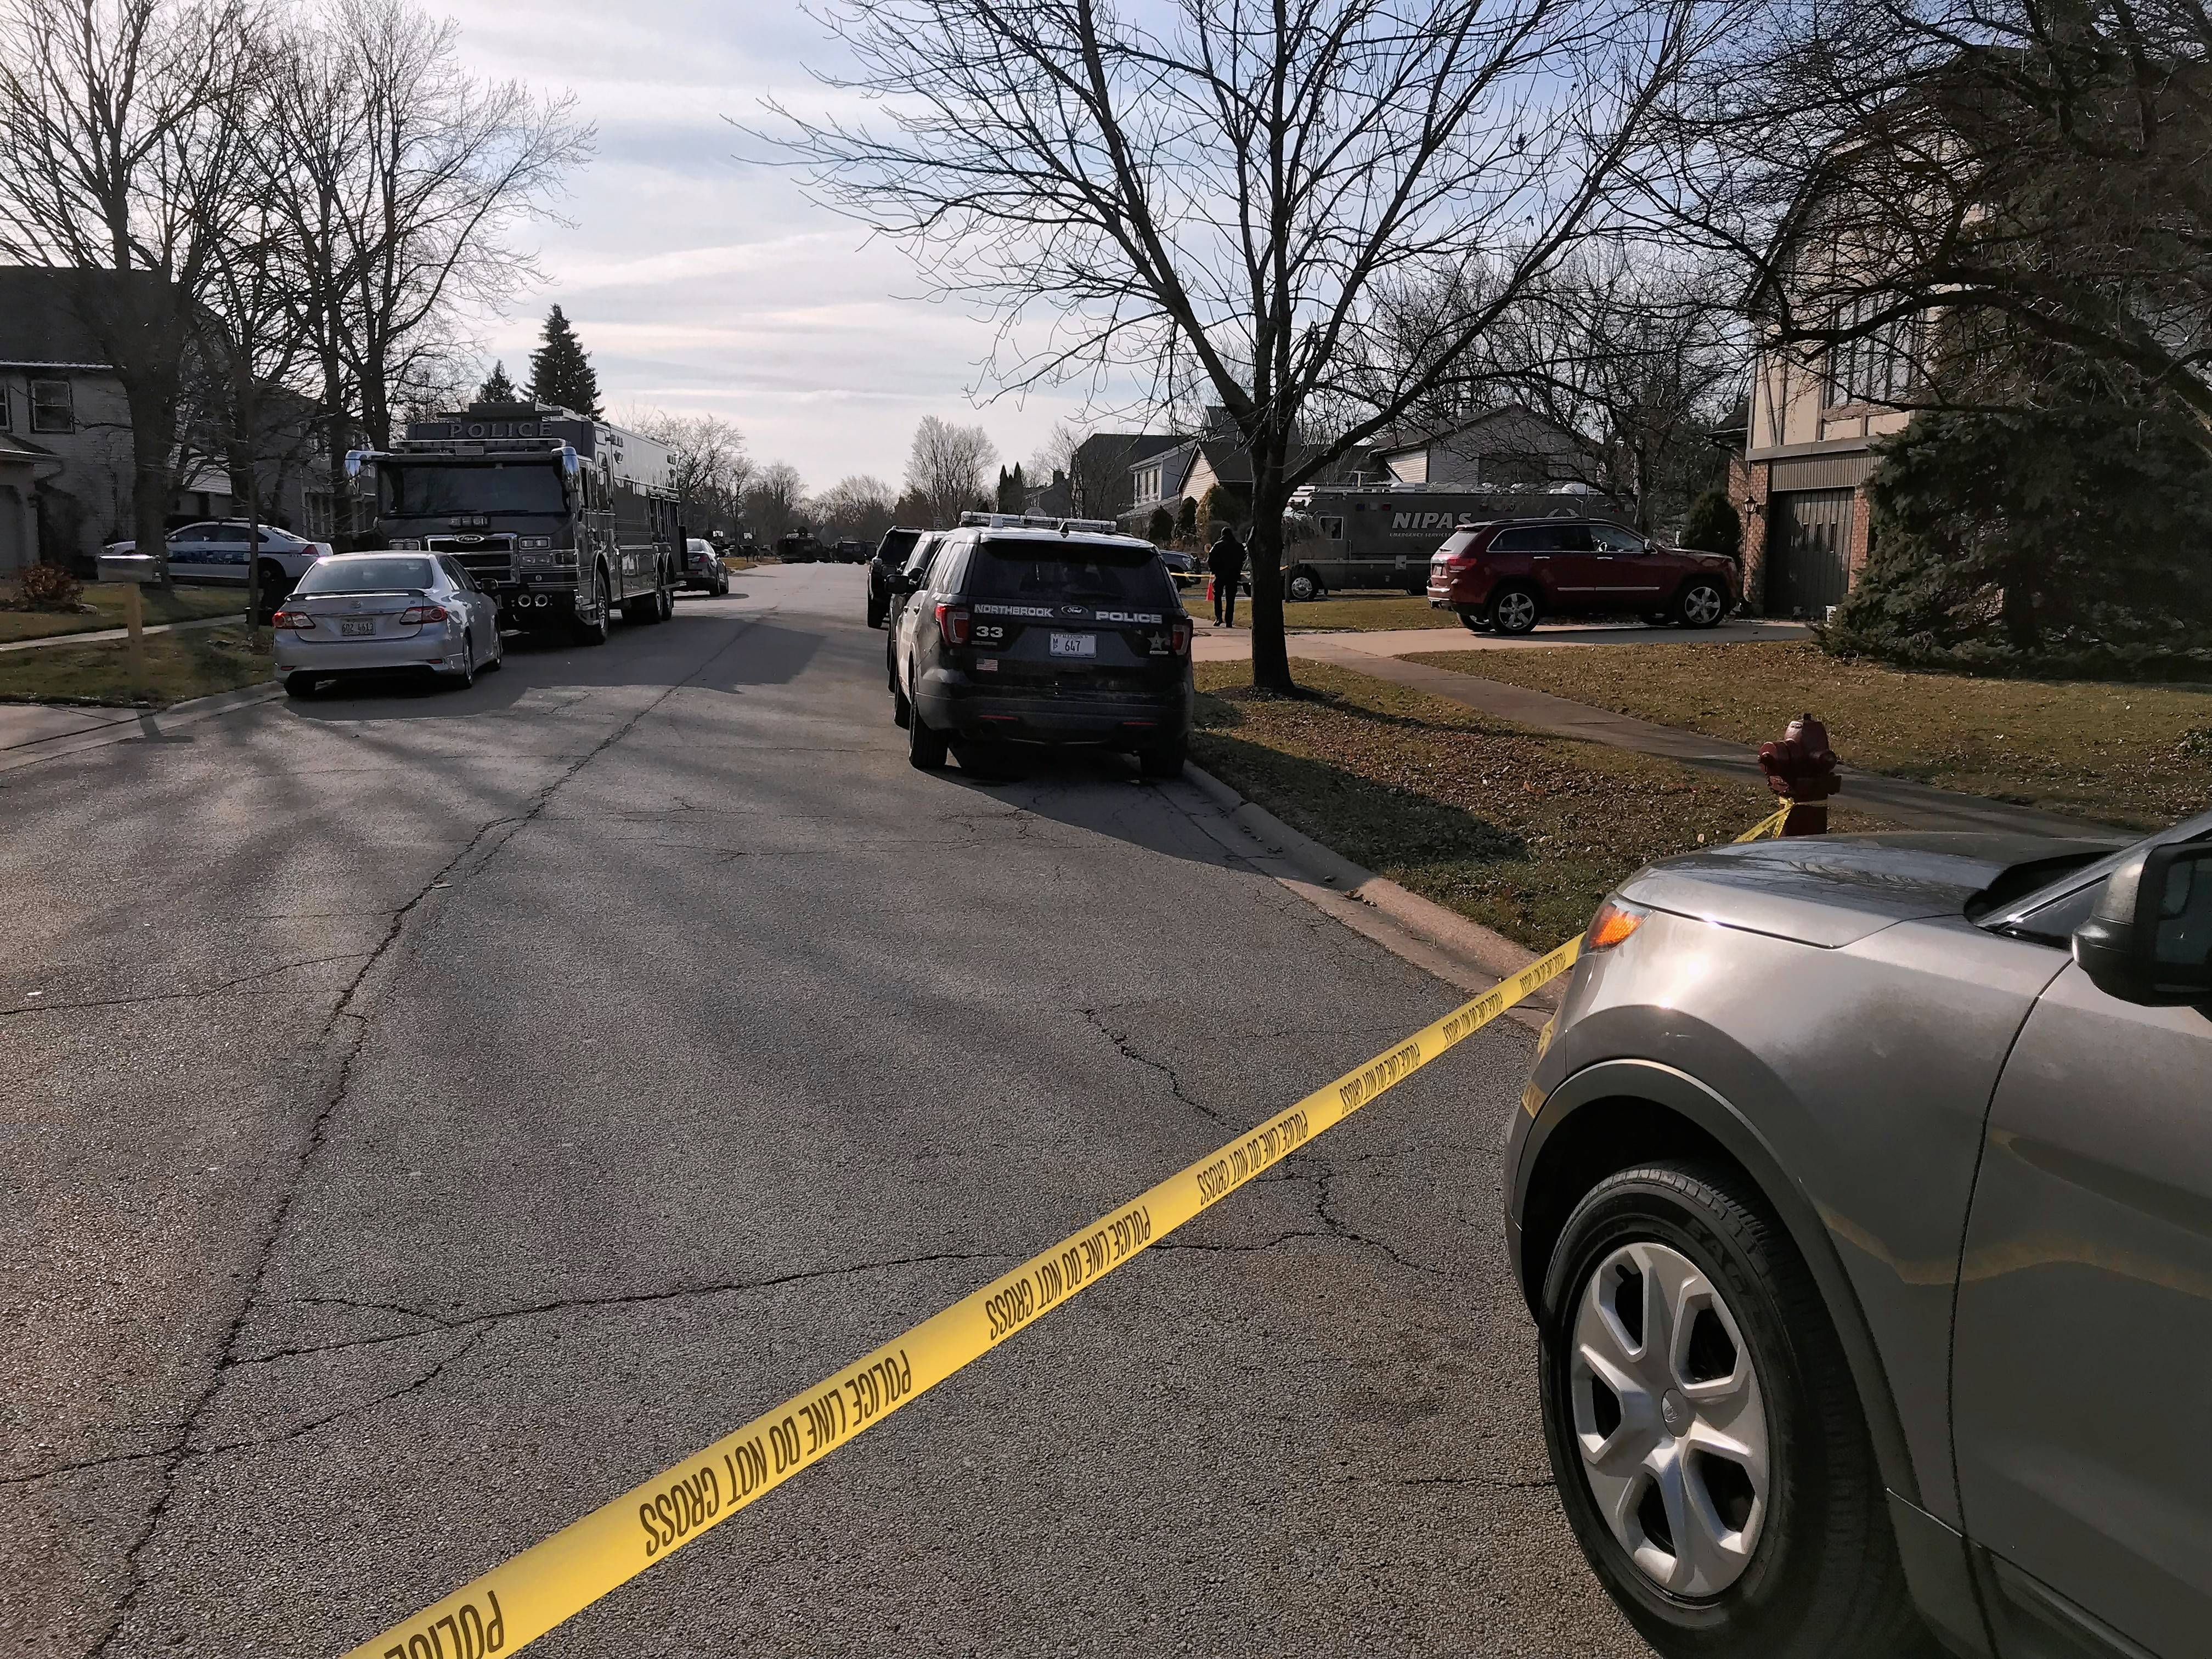 An armed standoff that had Bartlett police asking residents living near Independence Drive to stay in their homes Sunday morning was resolved safely, authorities said.